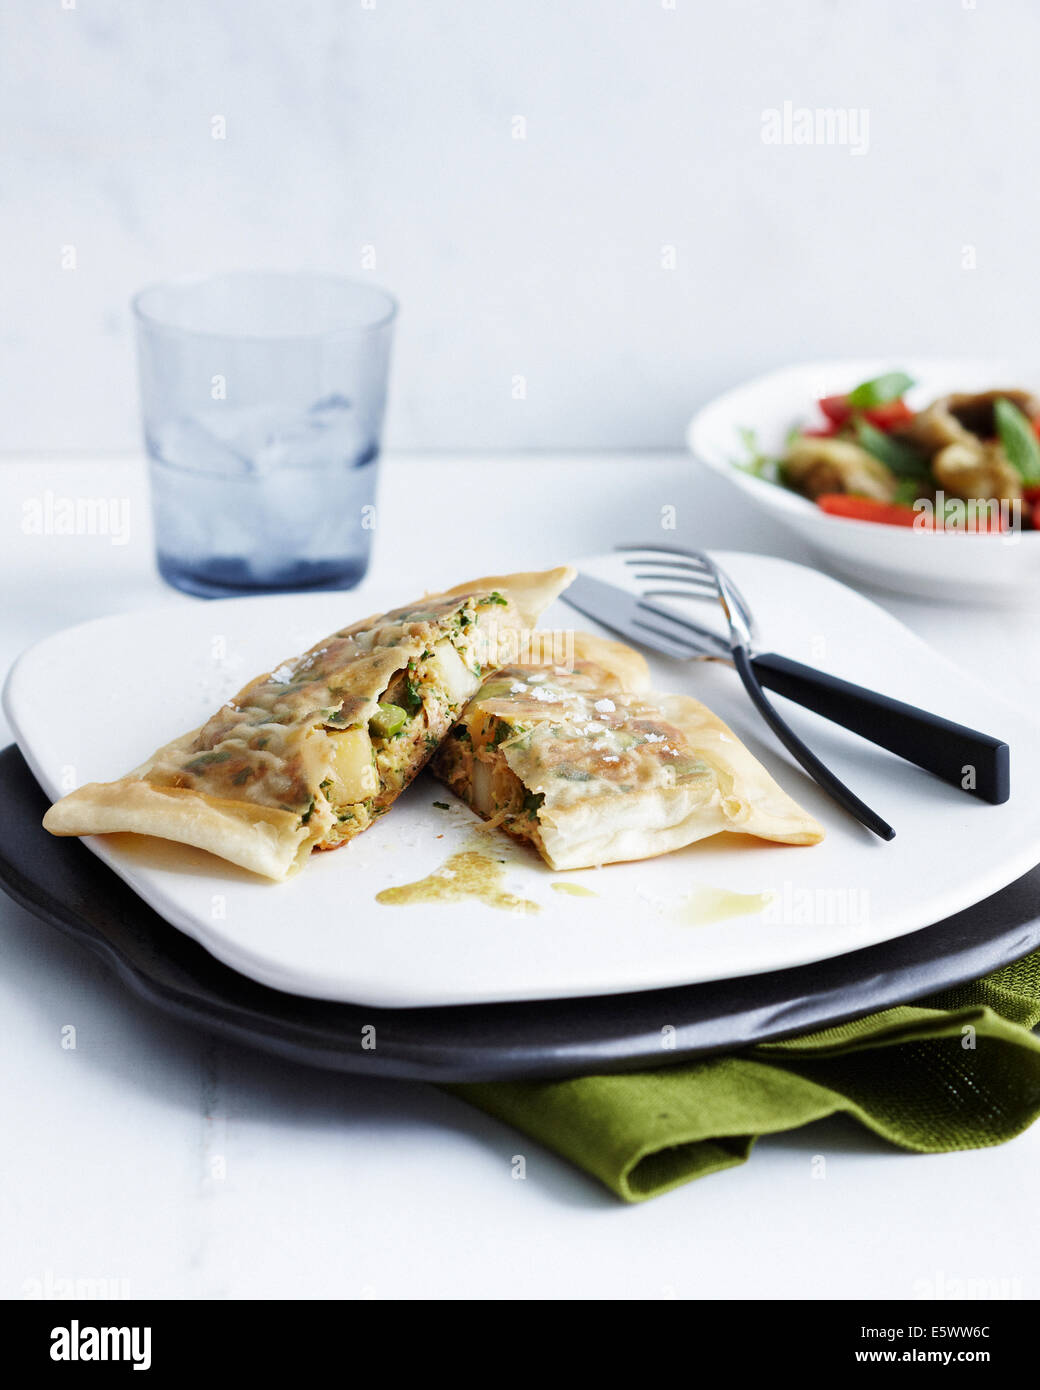 Plate with tuna and egg briks and side dish - Stock Image